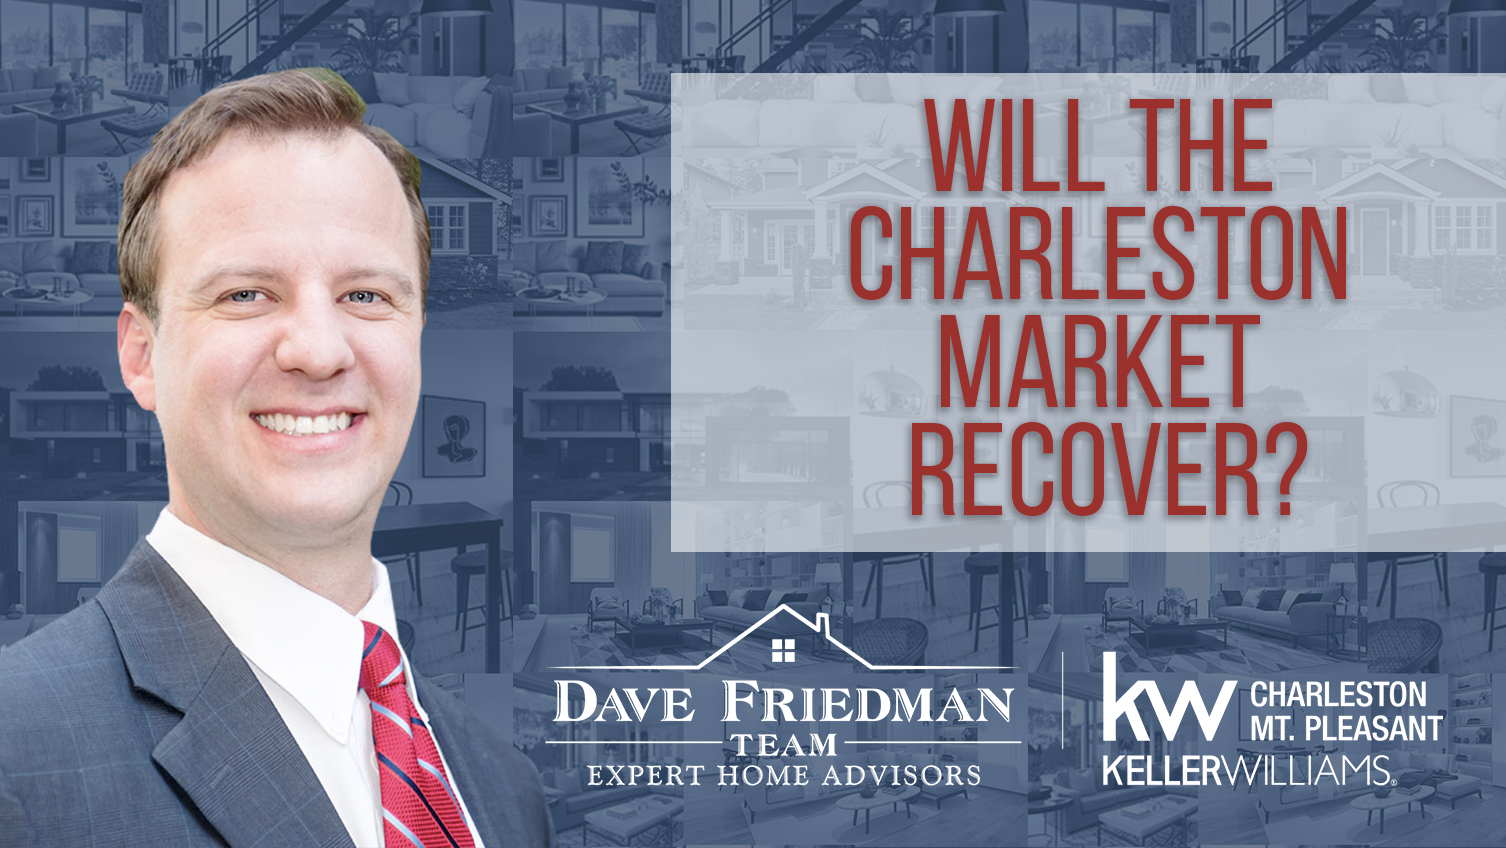 Q: Will the Charleston Market Recover?